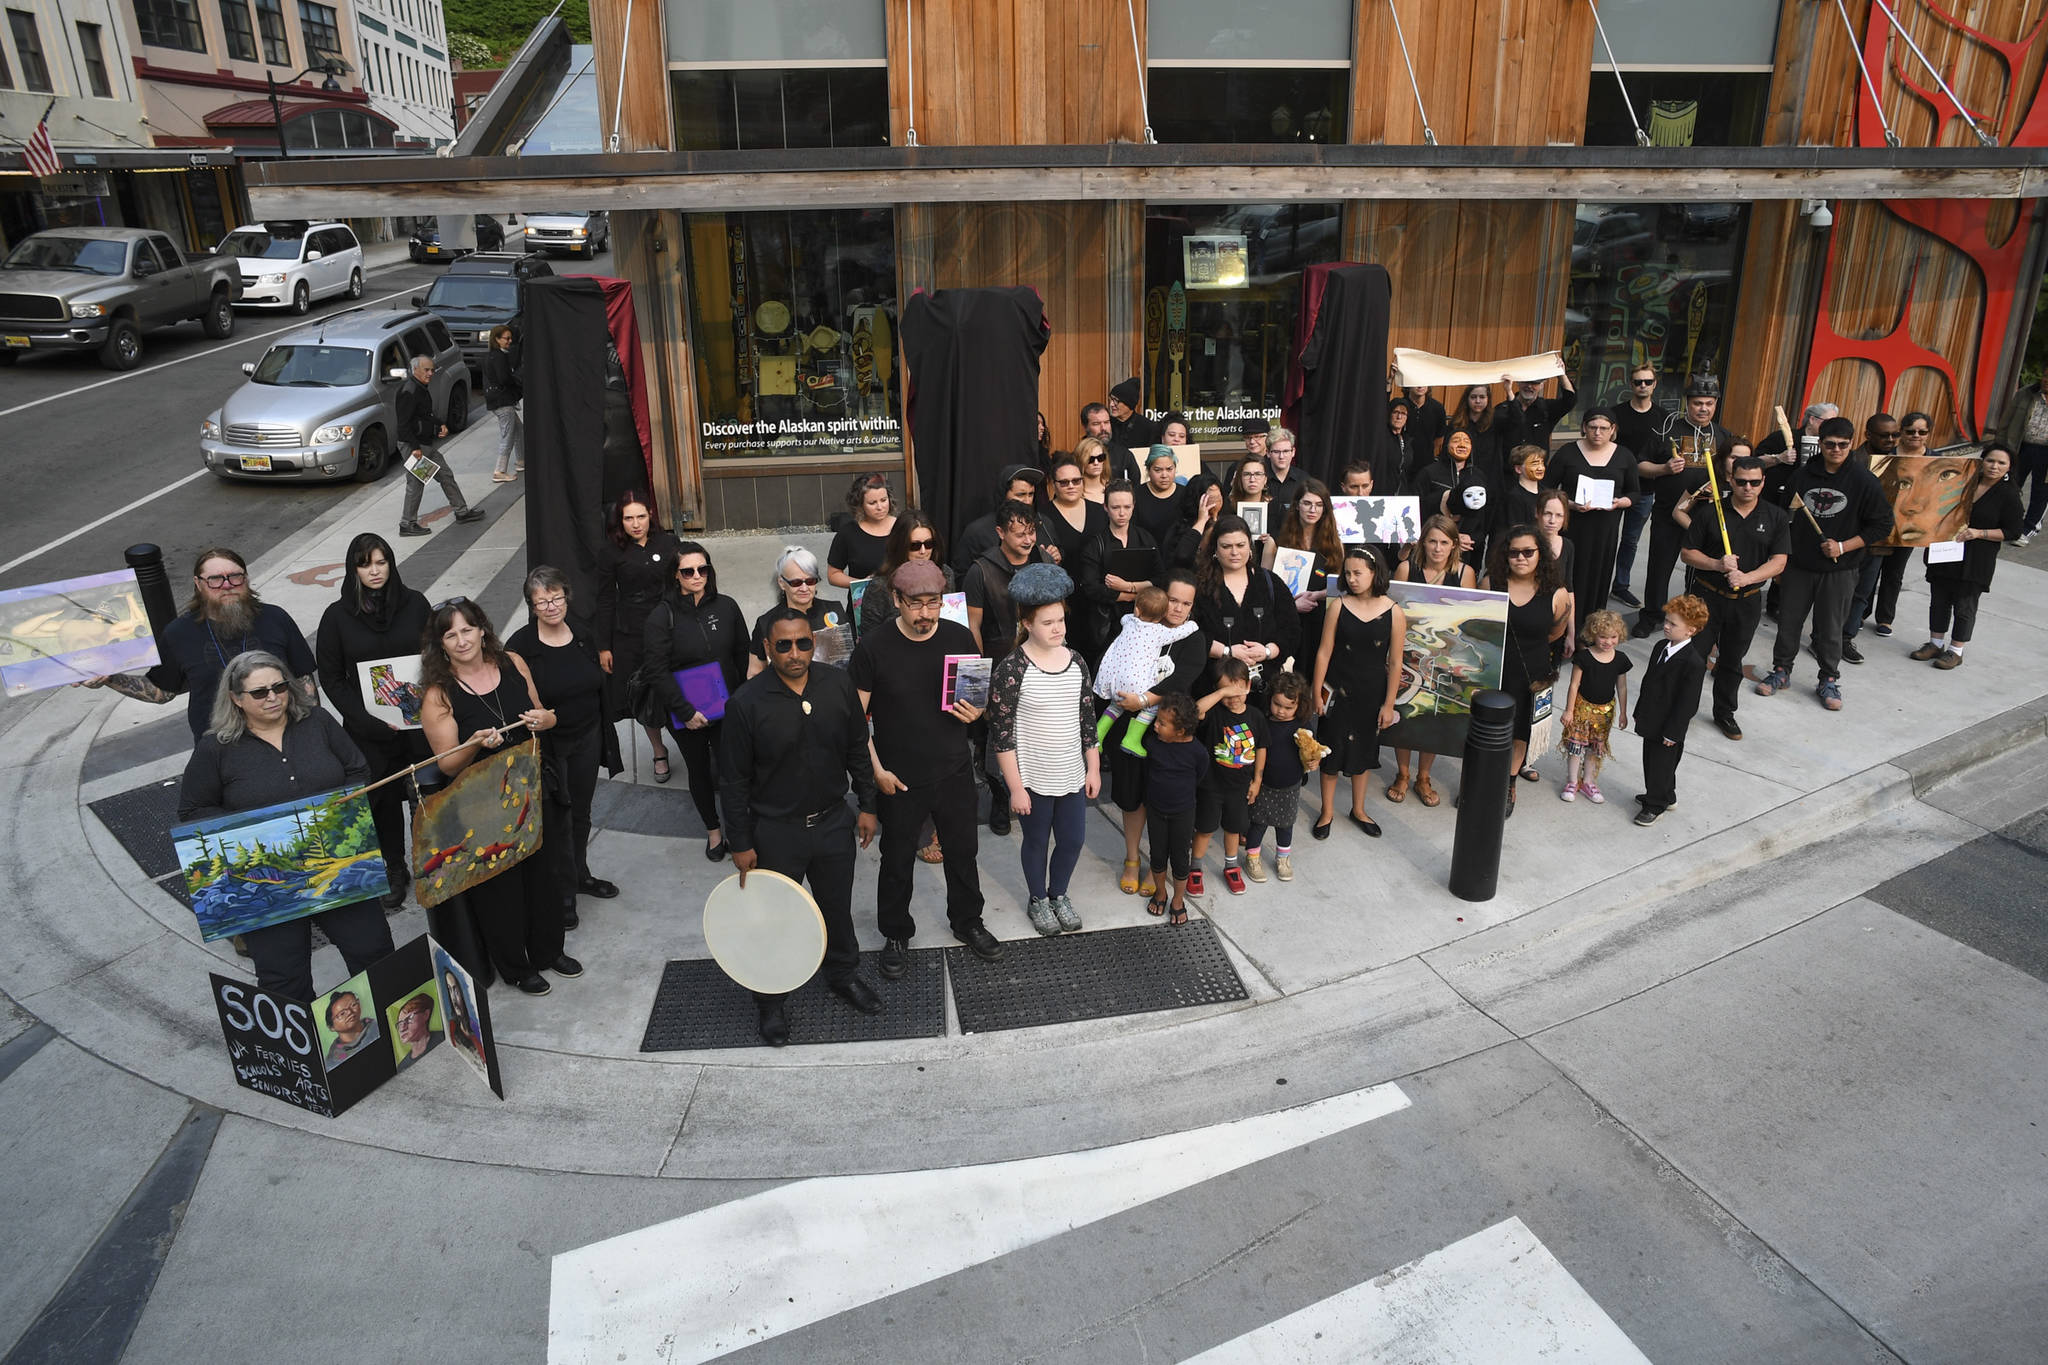 About 50 artists stand with their work in front of the Sealaska Heritage Institute on Tuesday, July 9, 2019, to protest heavy cuts to state arts programs. (Michael Penn | Juneau Empire File)